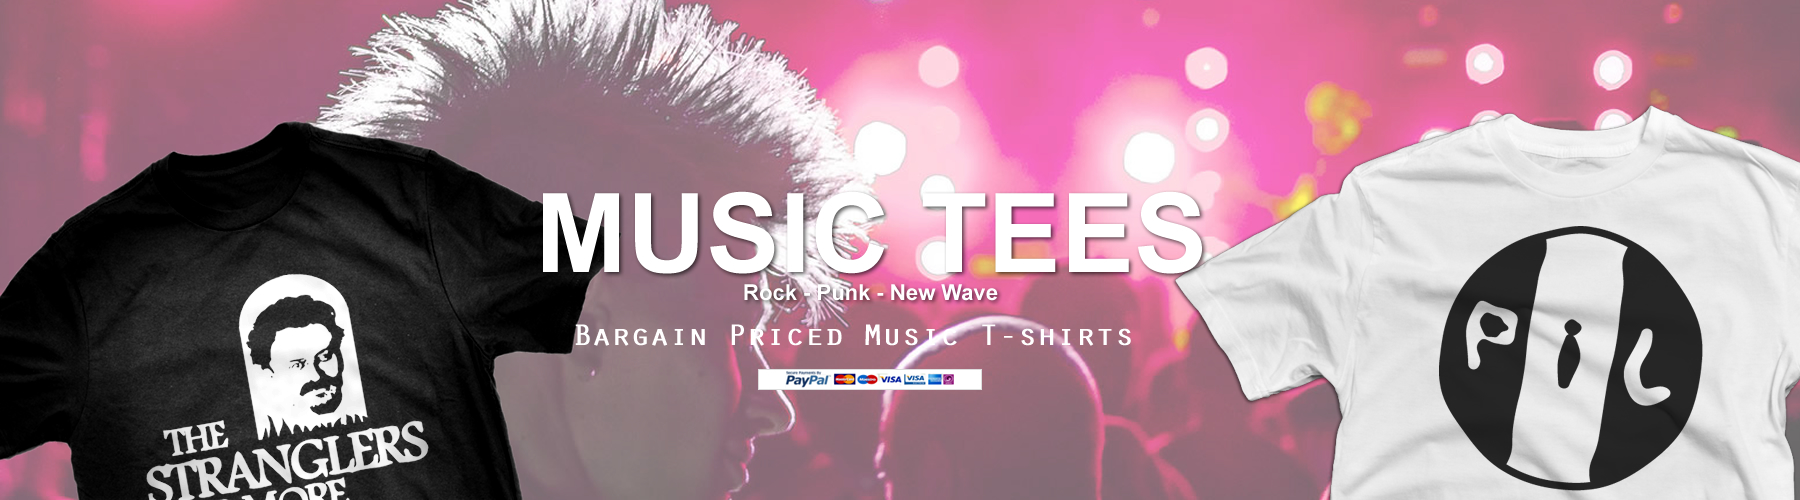 Alternative Music New Wave and Punk T-shirts